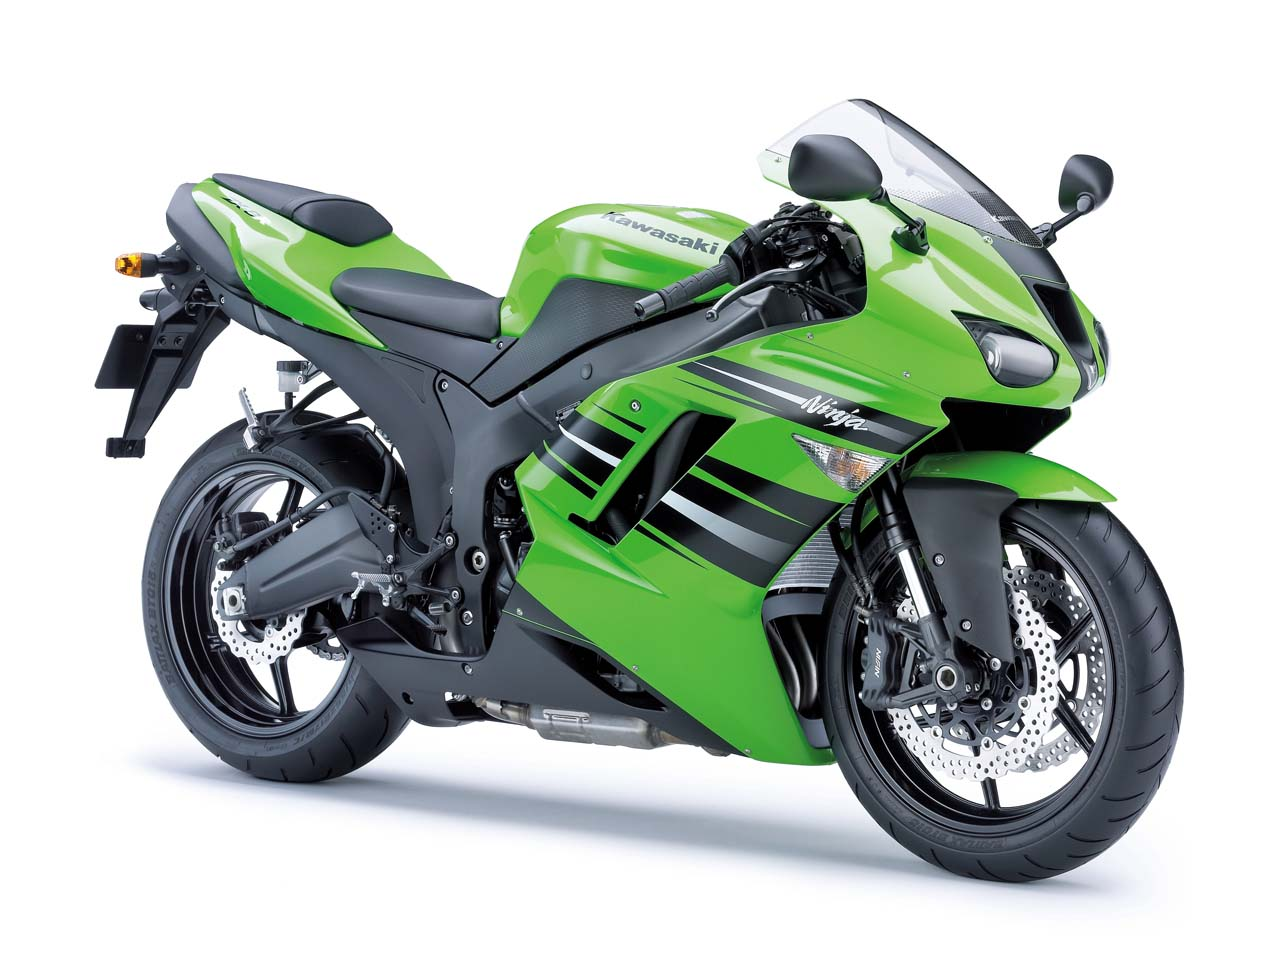 Kawasaki Ninja ZX-14 Candy Lime Green hyper sport bike